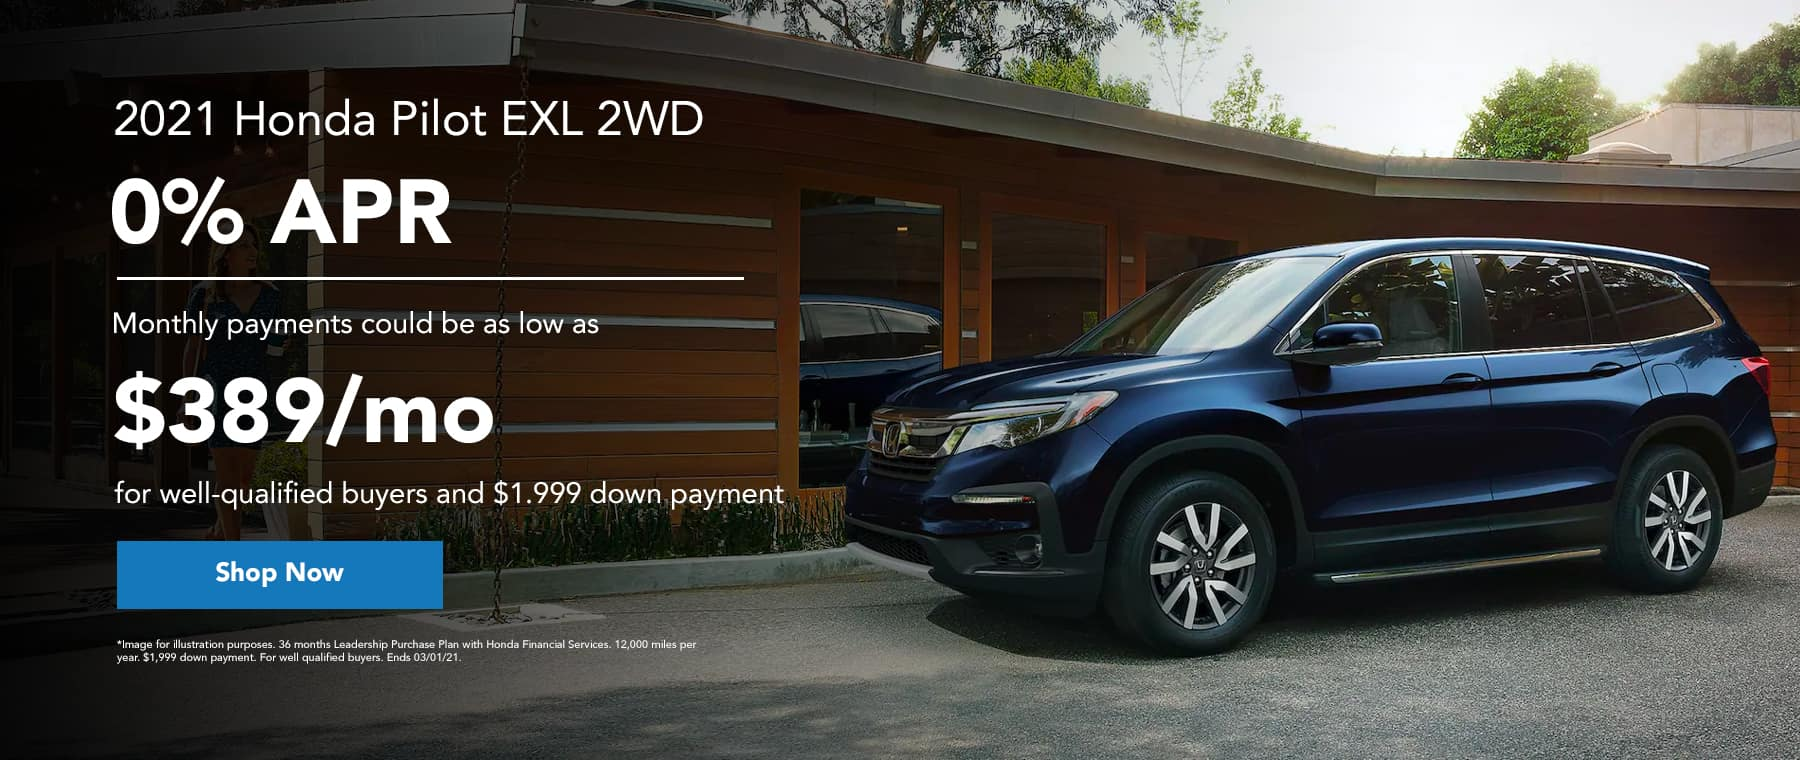 2021 Honda pilot EXL 2WD - 0% APR - monthly payments could be as low as $389/mo